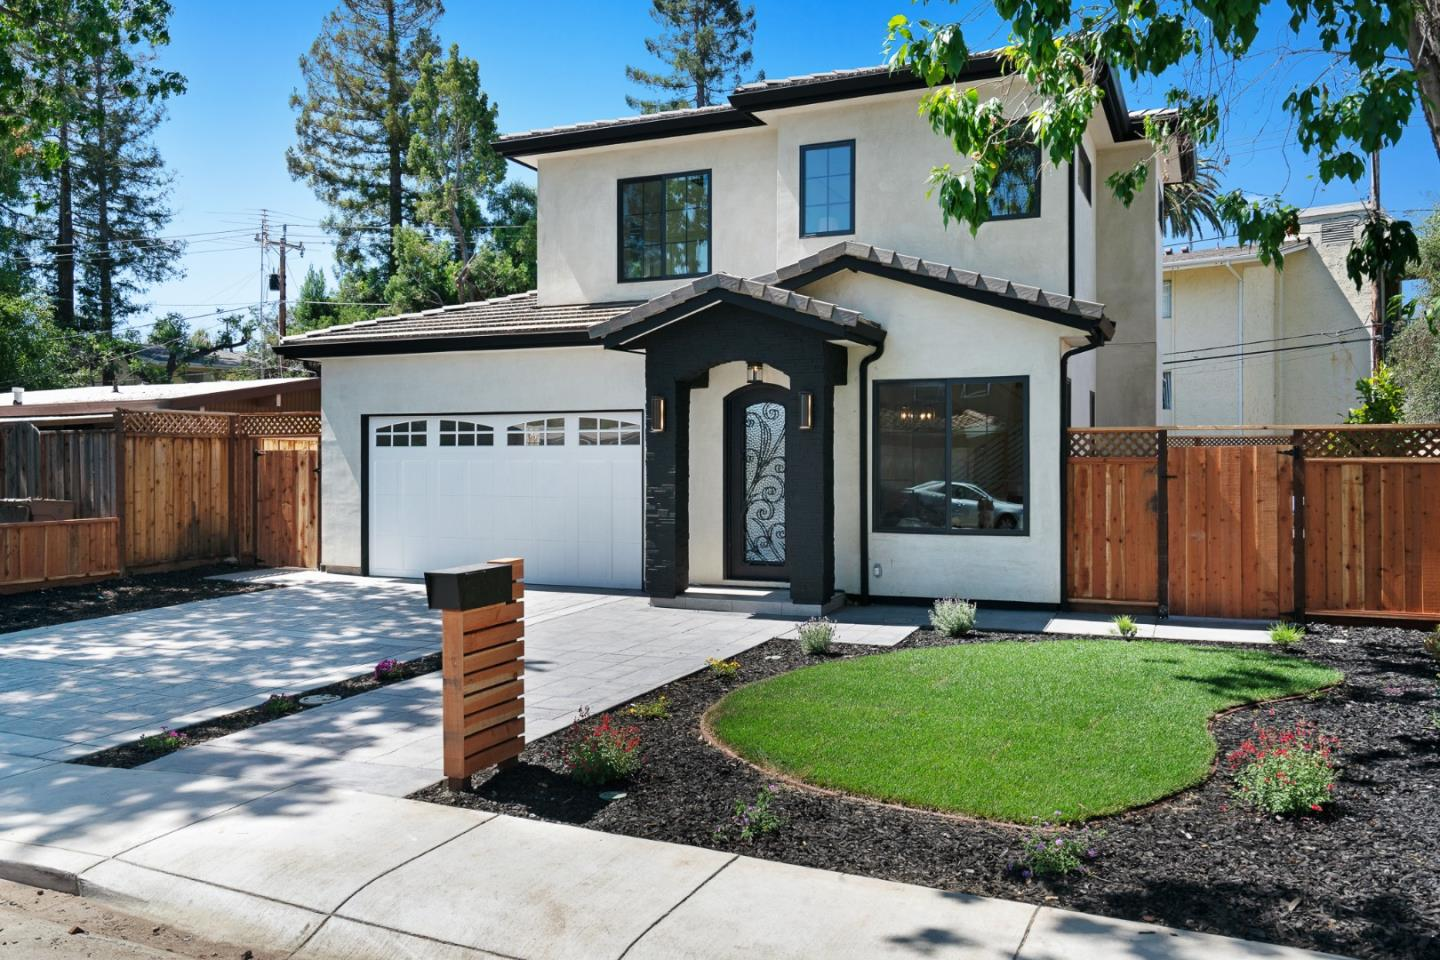 Detail Gallery Image 1 of 1 For 18831 Arata Way, Cupertino, CA, 95014 - 4 Beds | 3/1 Baths